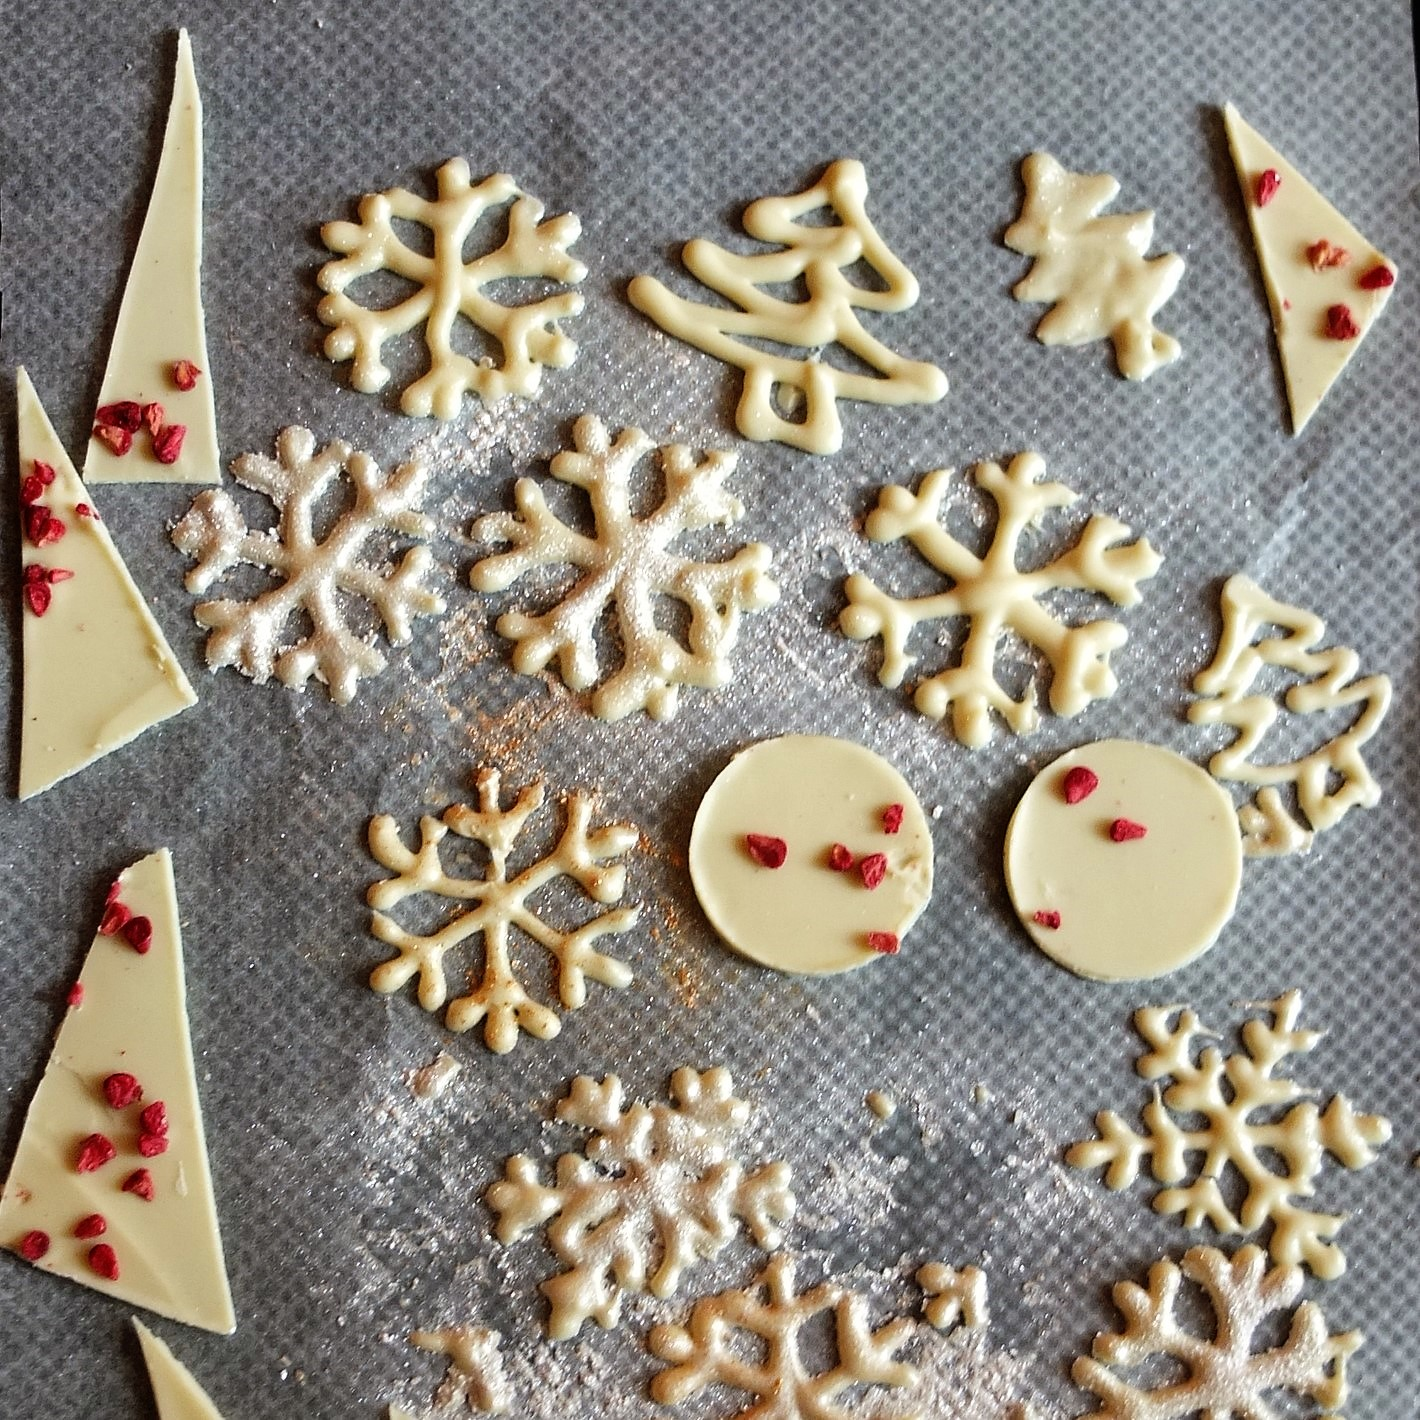 How To Make Sparkly Chocolate Snowflakes And Other Shapes